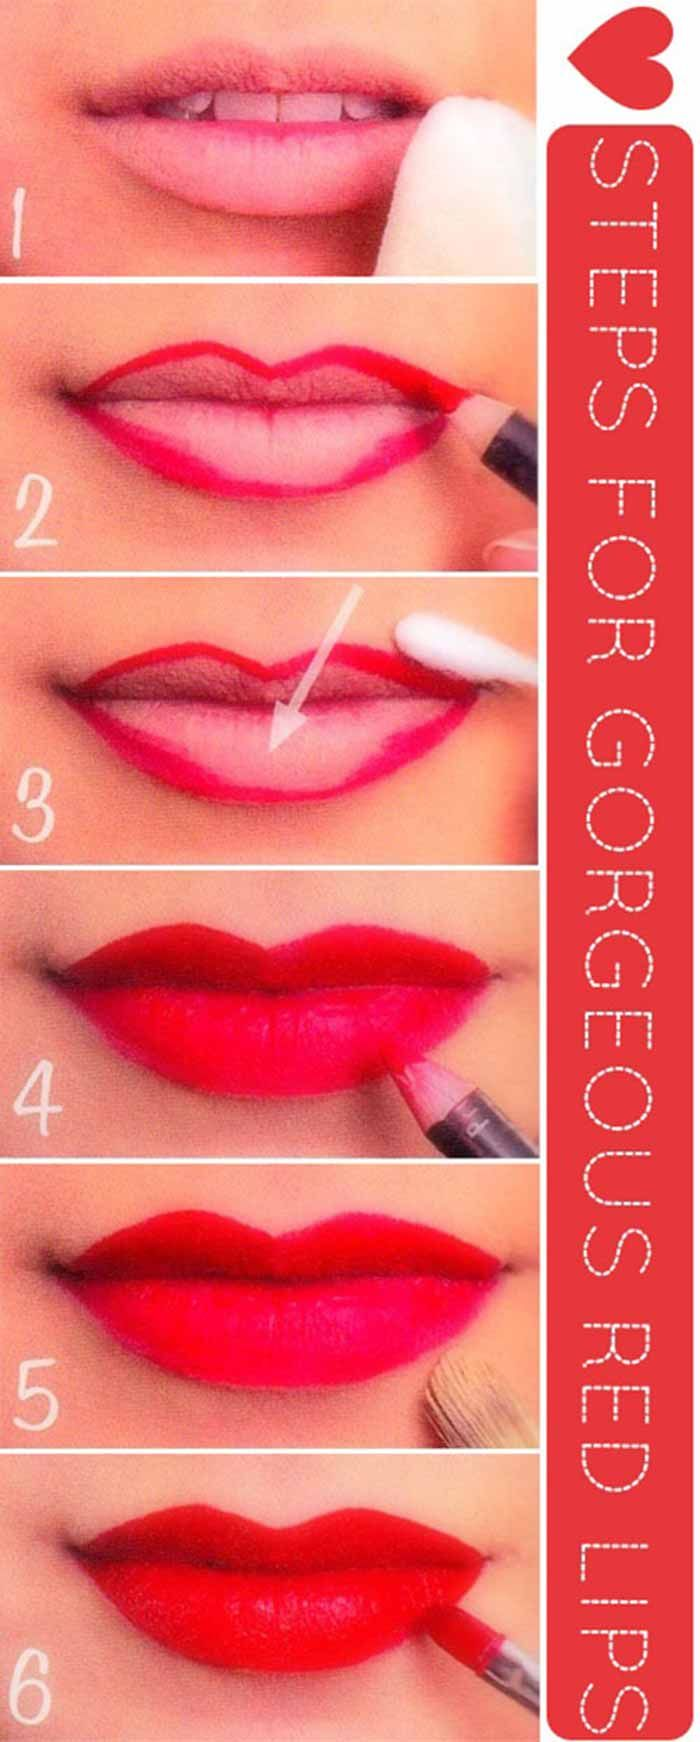 Top 15 Stunning #LipMakeup #Tutorials That You Should Try Out